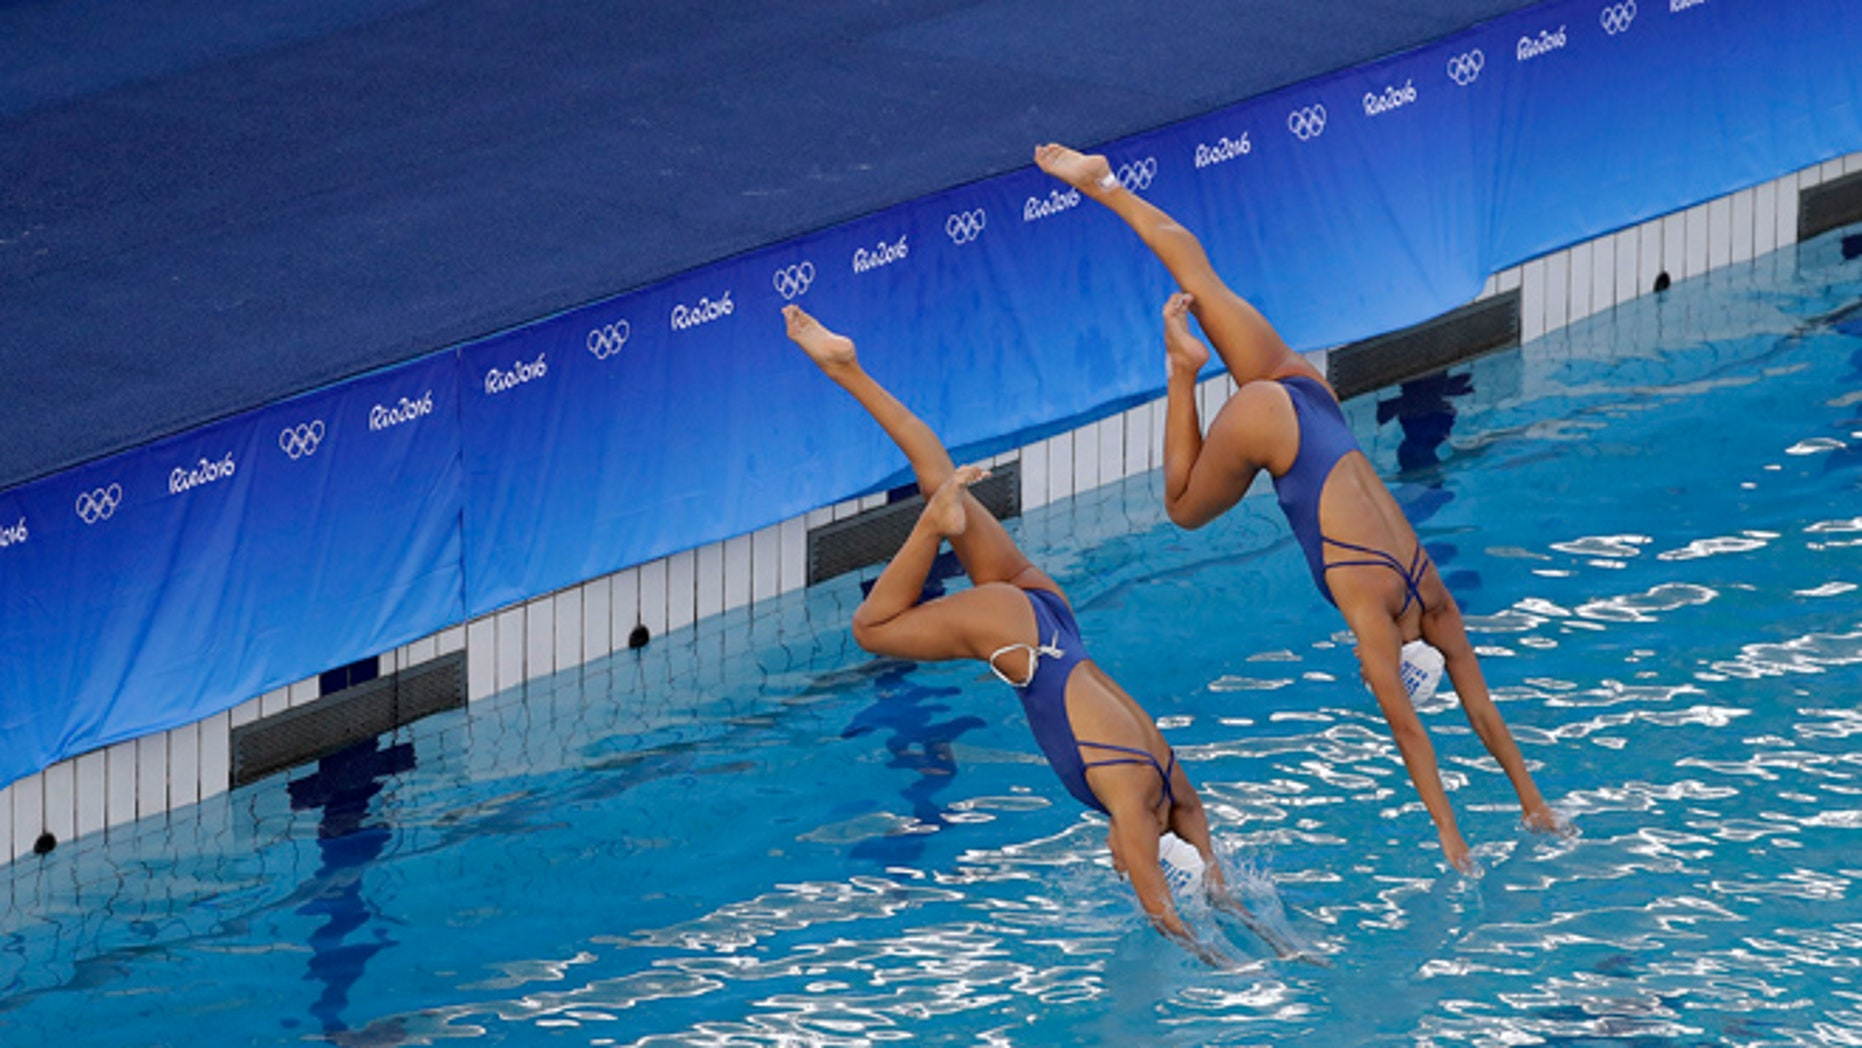 Greece's synchronized swimming duets team of Evangelia Papazoglou and Evangelia Platanioti dive into the pool in the Lenk Aquatic Center during a training session the morning after the pool went through a change in water, on Sunday, Aug. 14, 2016 in Rio de Janeiro, Brazil.